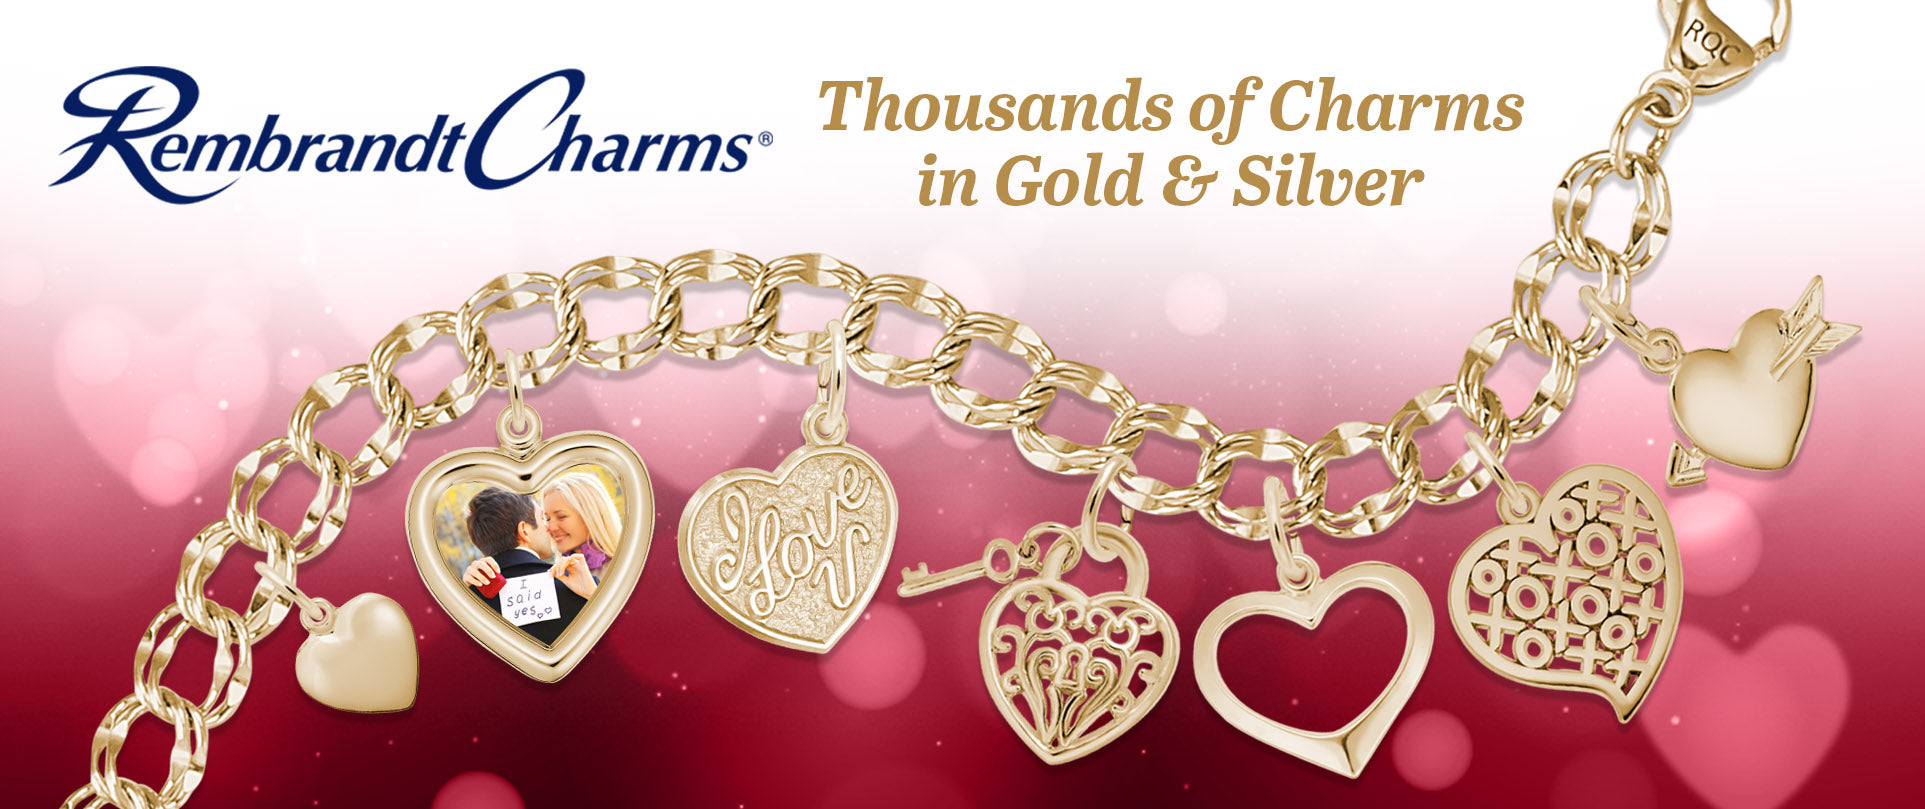 Engrave a Special Message! Thousands of Rembrandt Charms in Silver and Gold. Click to see Tekla Estelle's Engravable Collection!